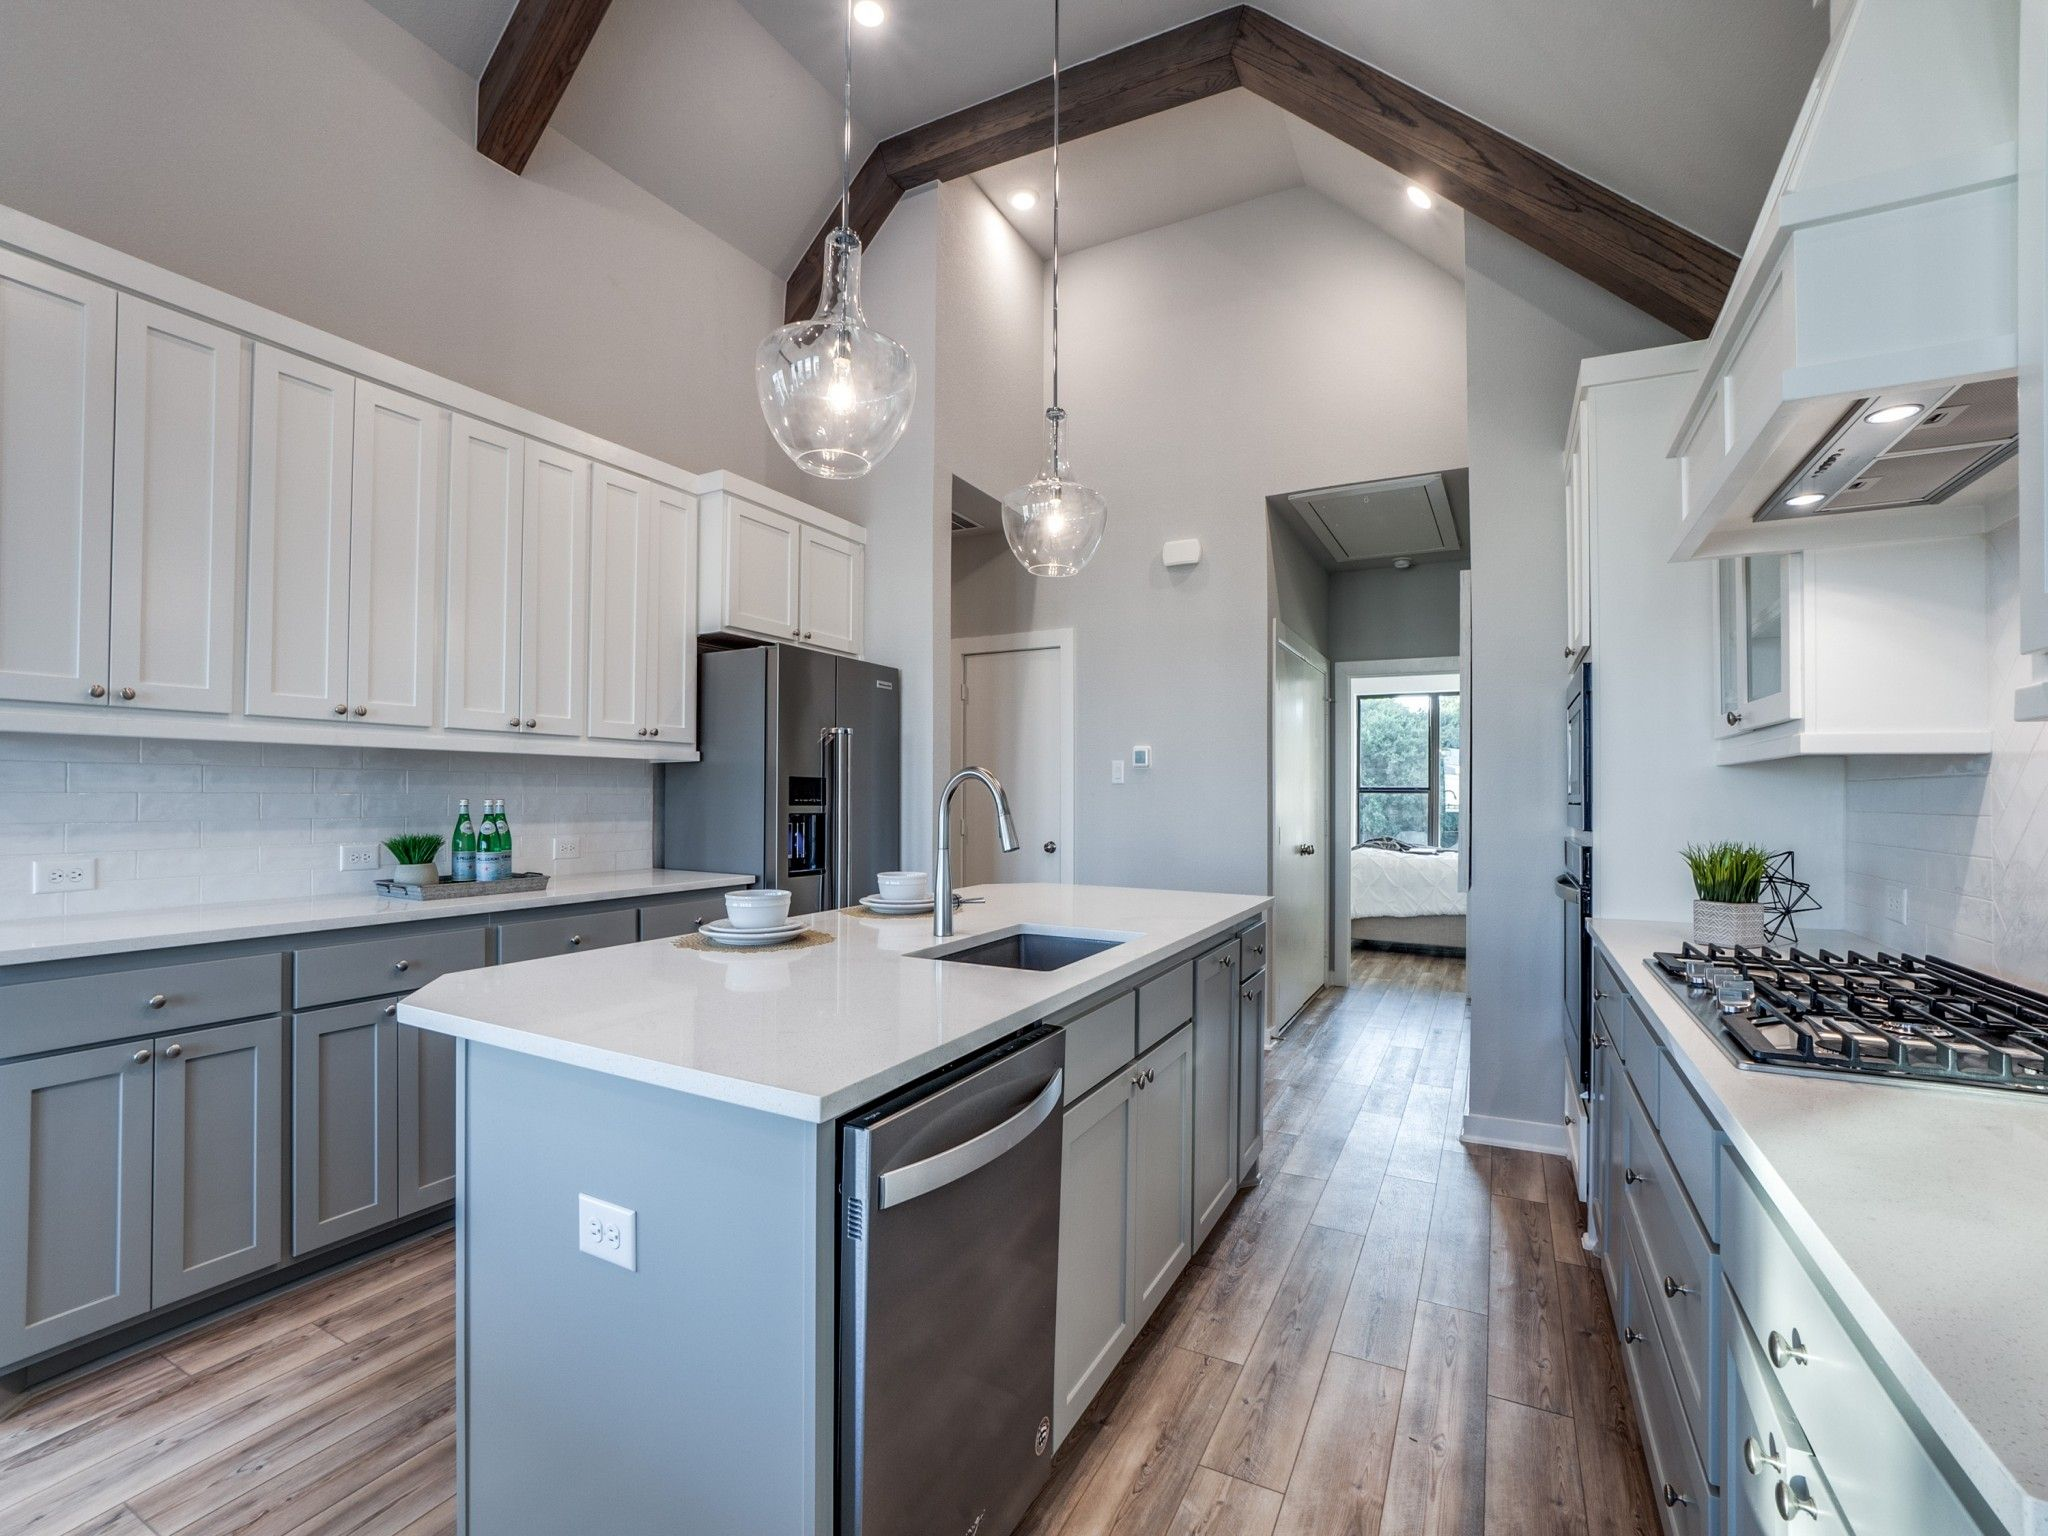 Kitchen featured in the Laurel By Centre Living Homes in Dallas, TX